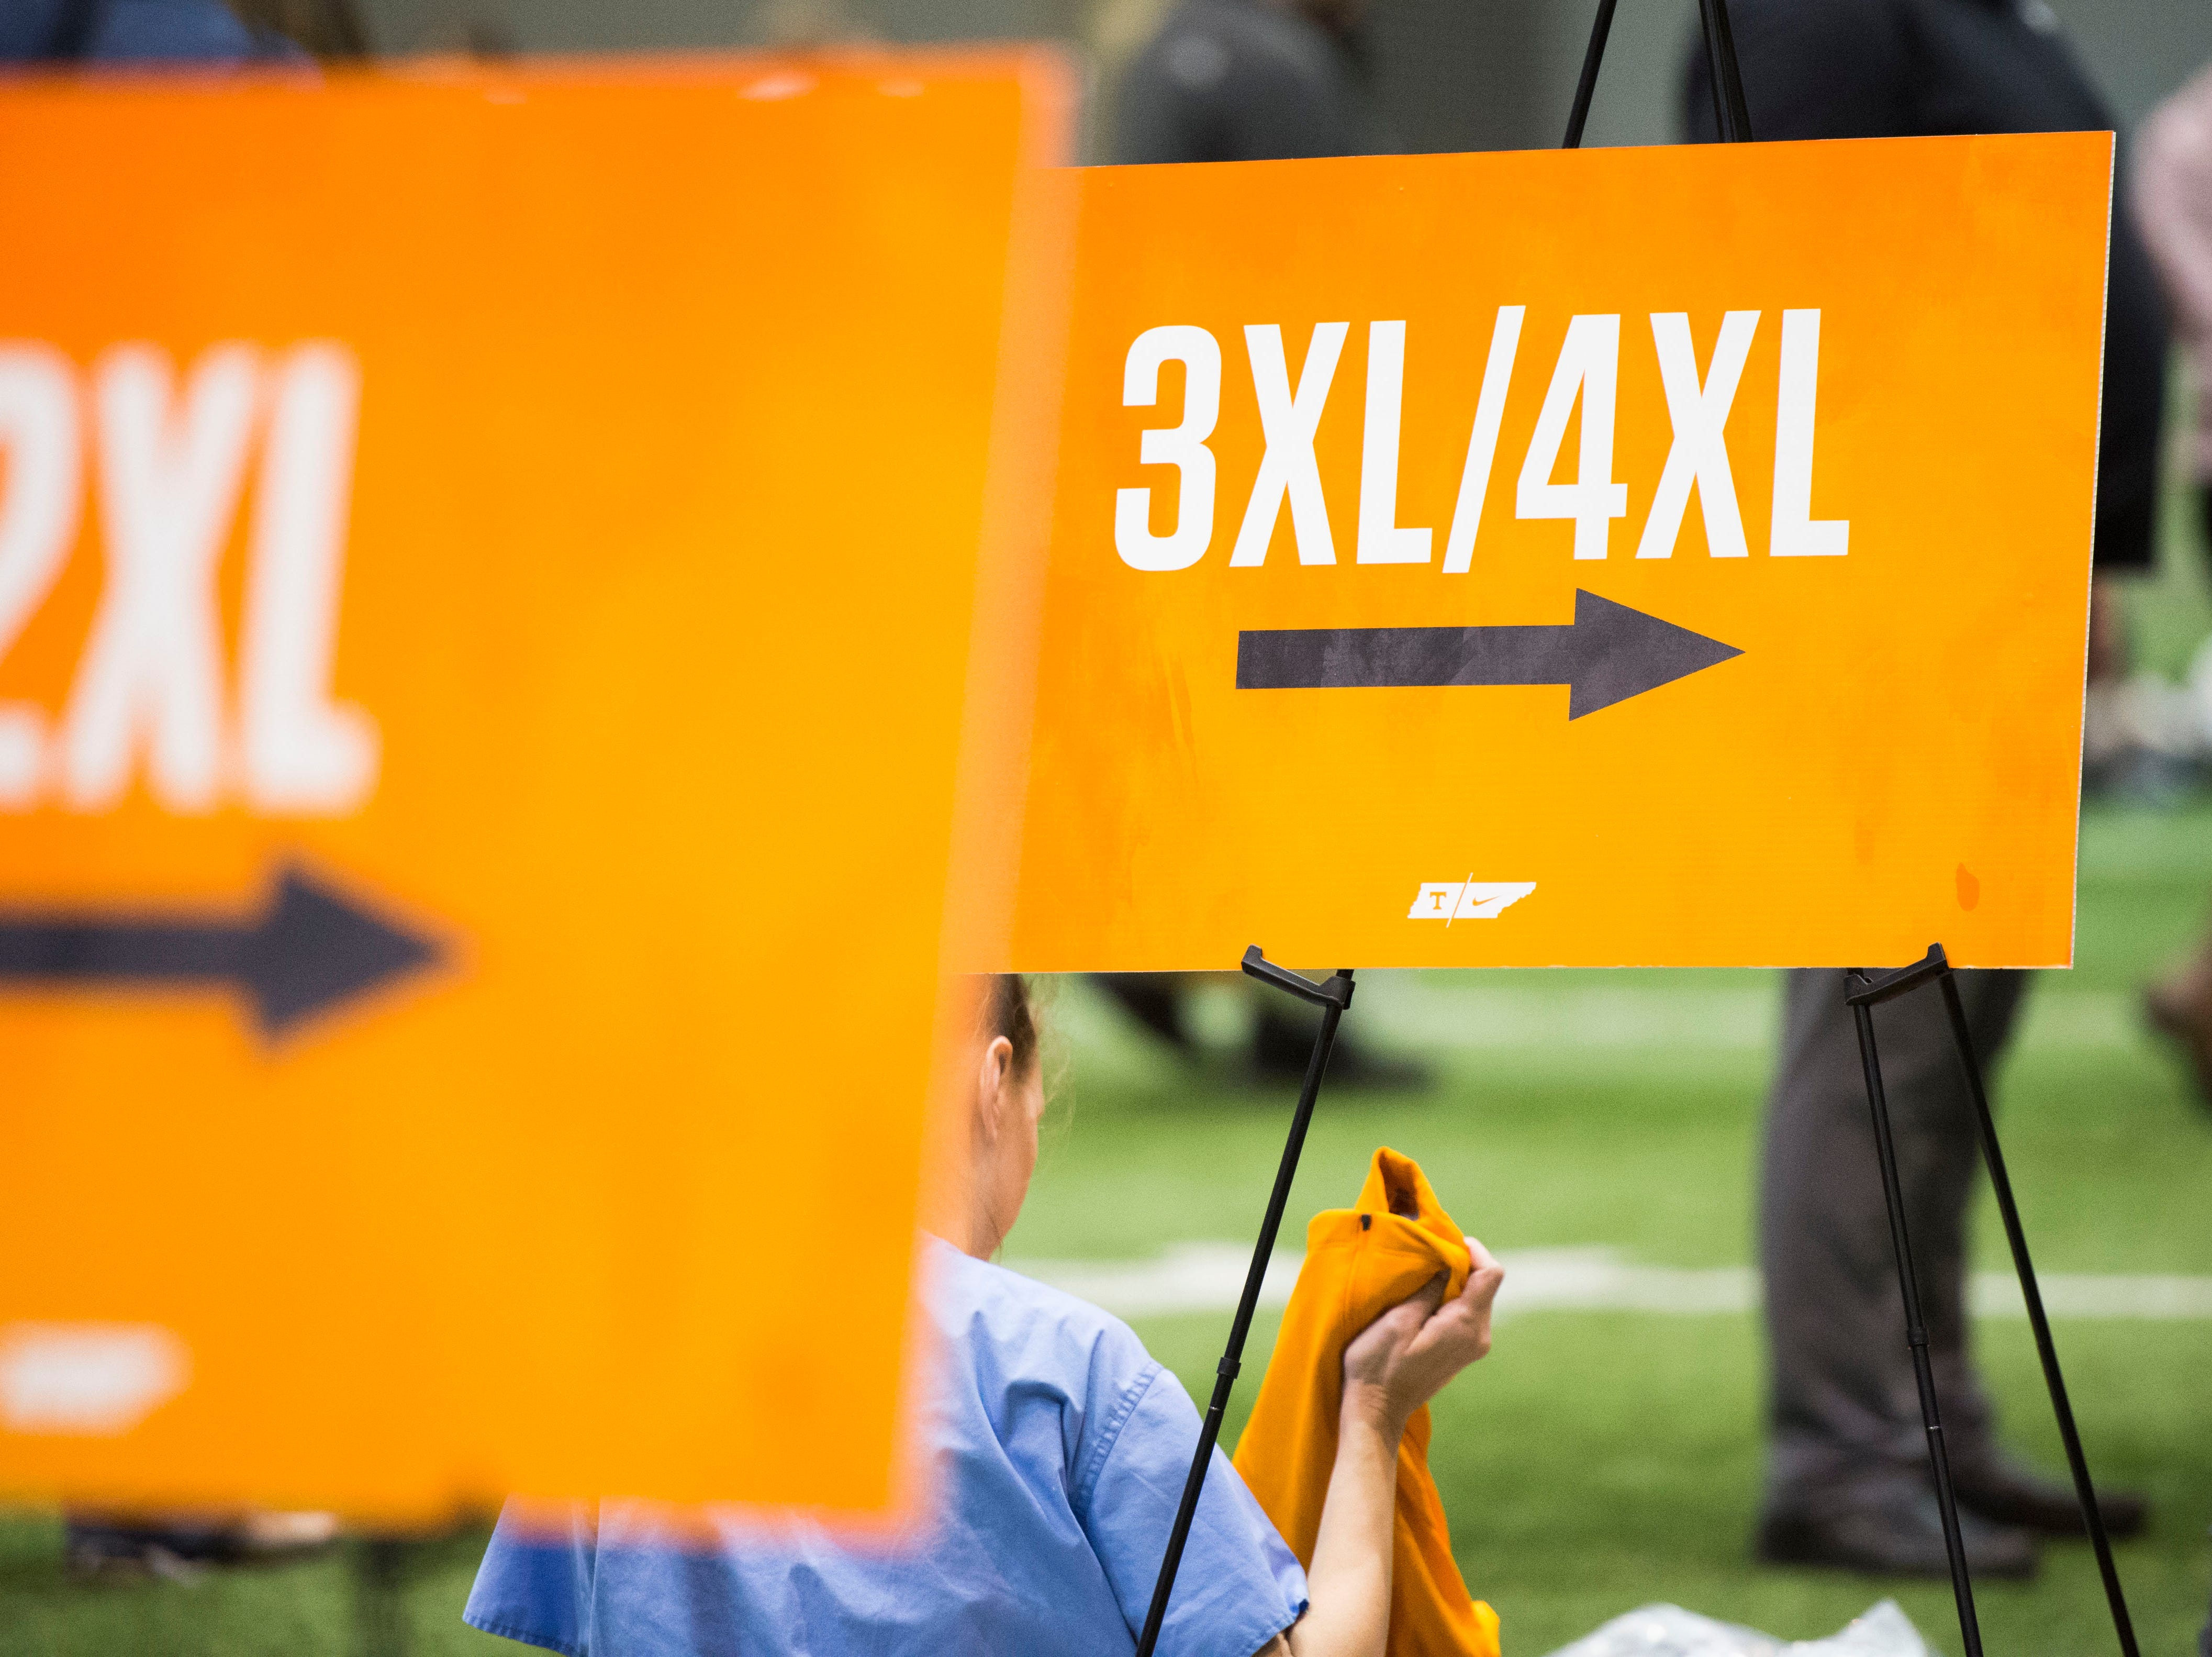 People shop for athletic apparel on Tennessee football's indoor practice field during University of Tennessee Athletic Department's inventory sale Wednesday, Dec. 12, 2018. Helmets and jerseys were sold along side the discount gear for hundreds of dollars.